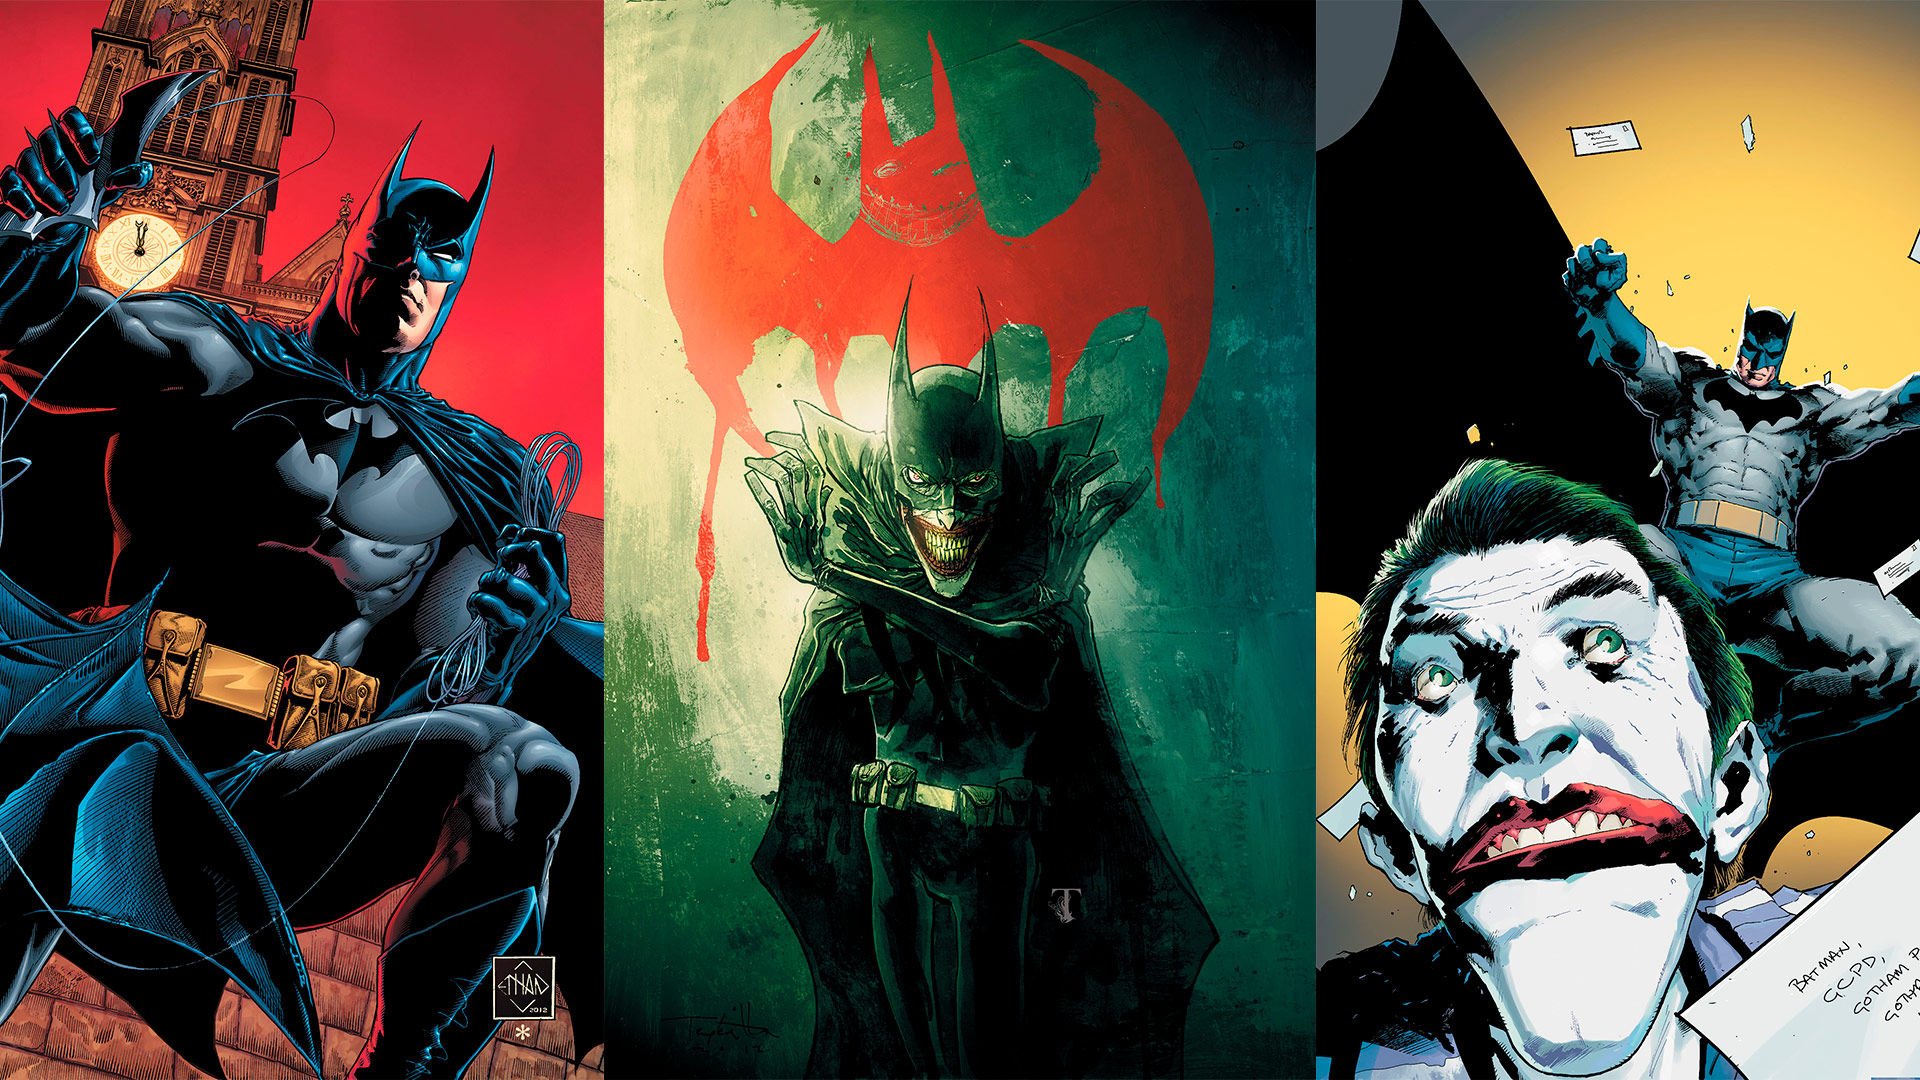 The Legends of the Dark Knight